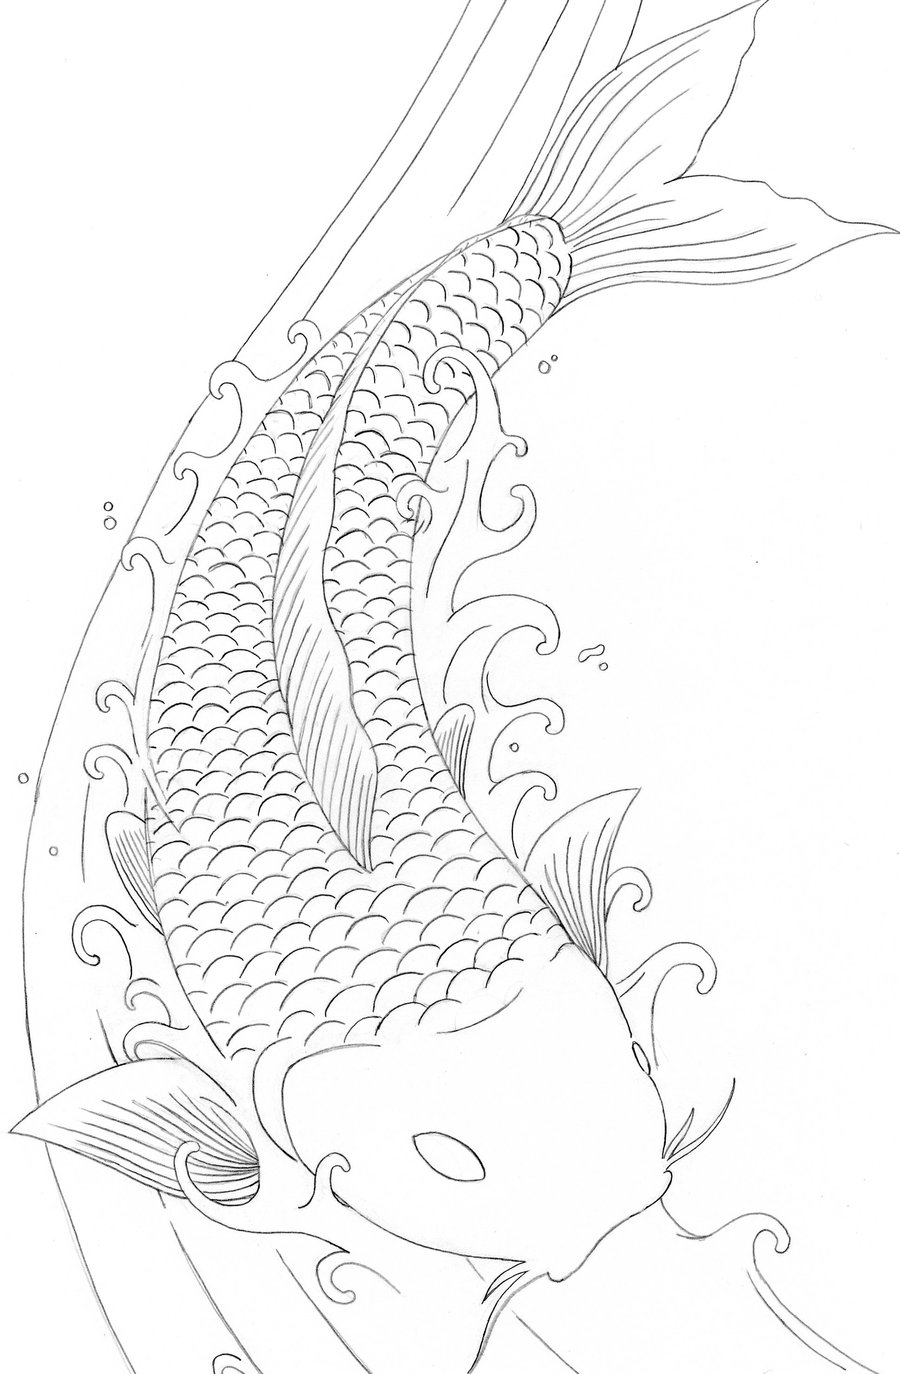 japanese koi fish coloring pages learn colors with japanese koi fish paint japanese koi coloring pages fish japanese koi